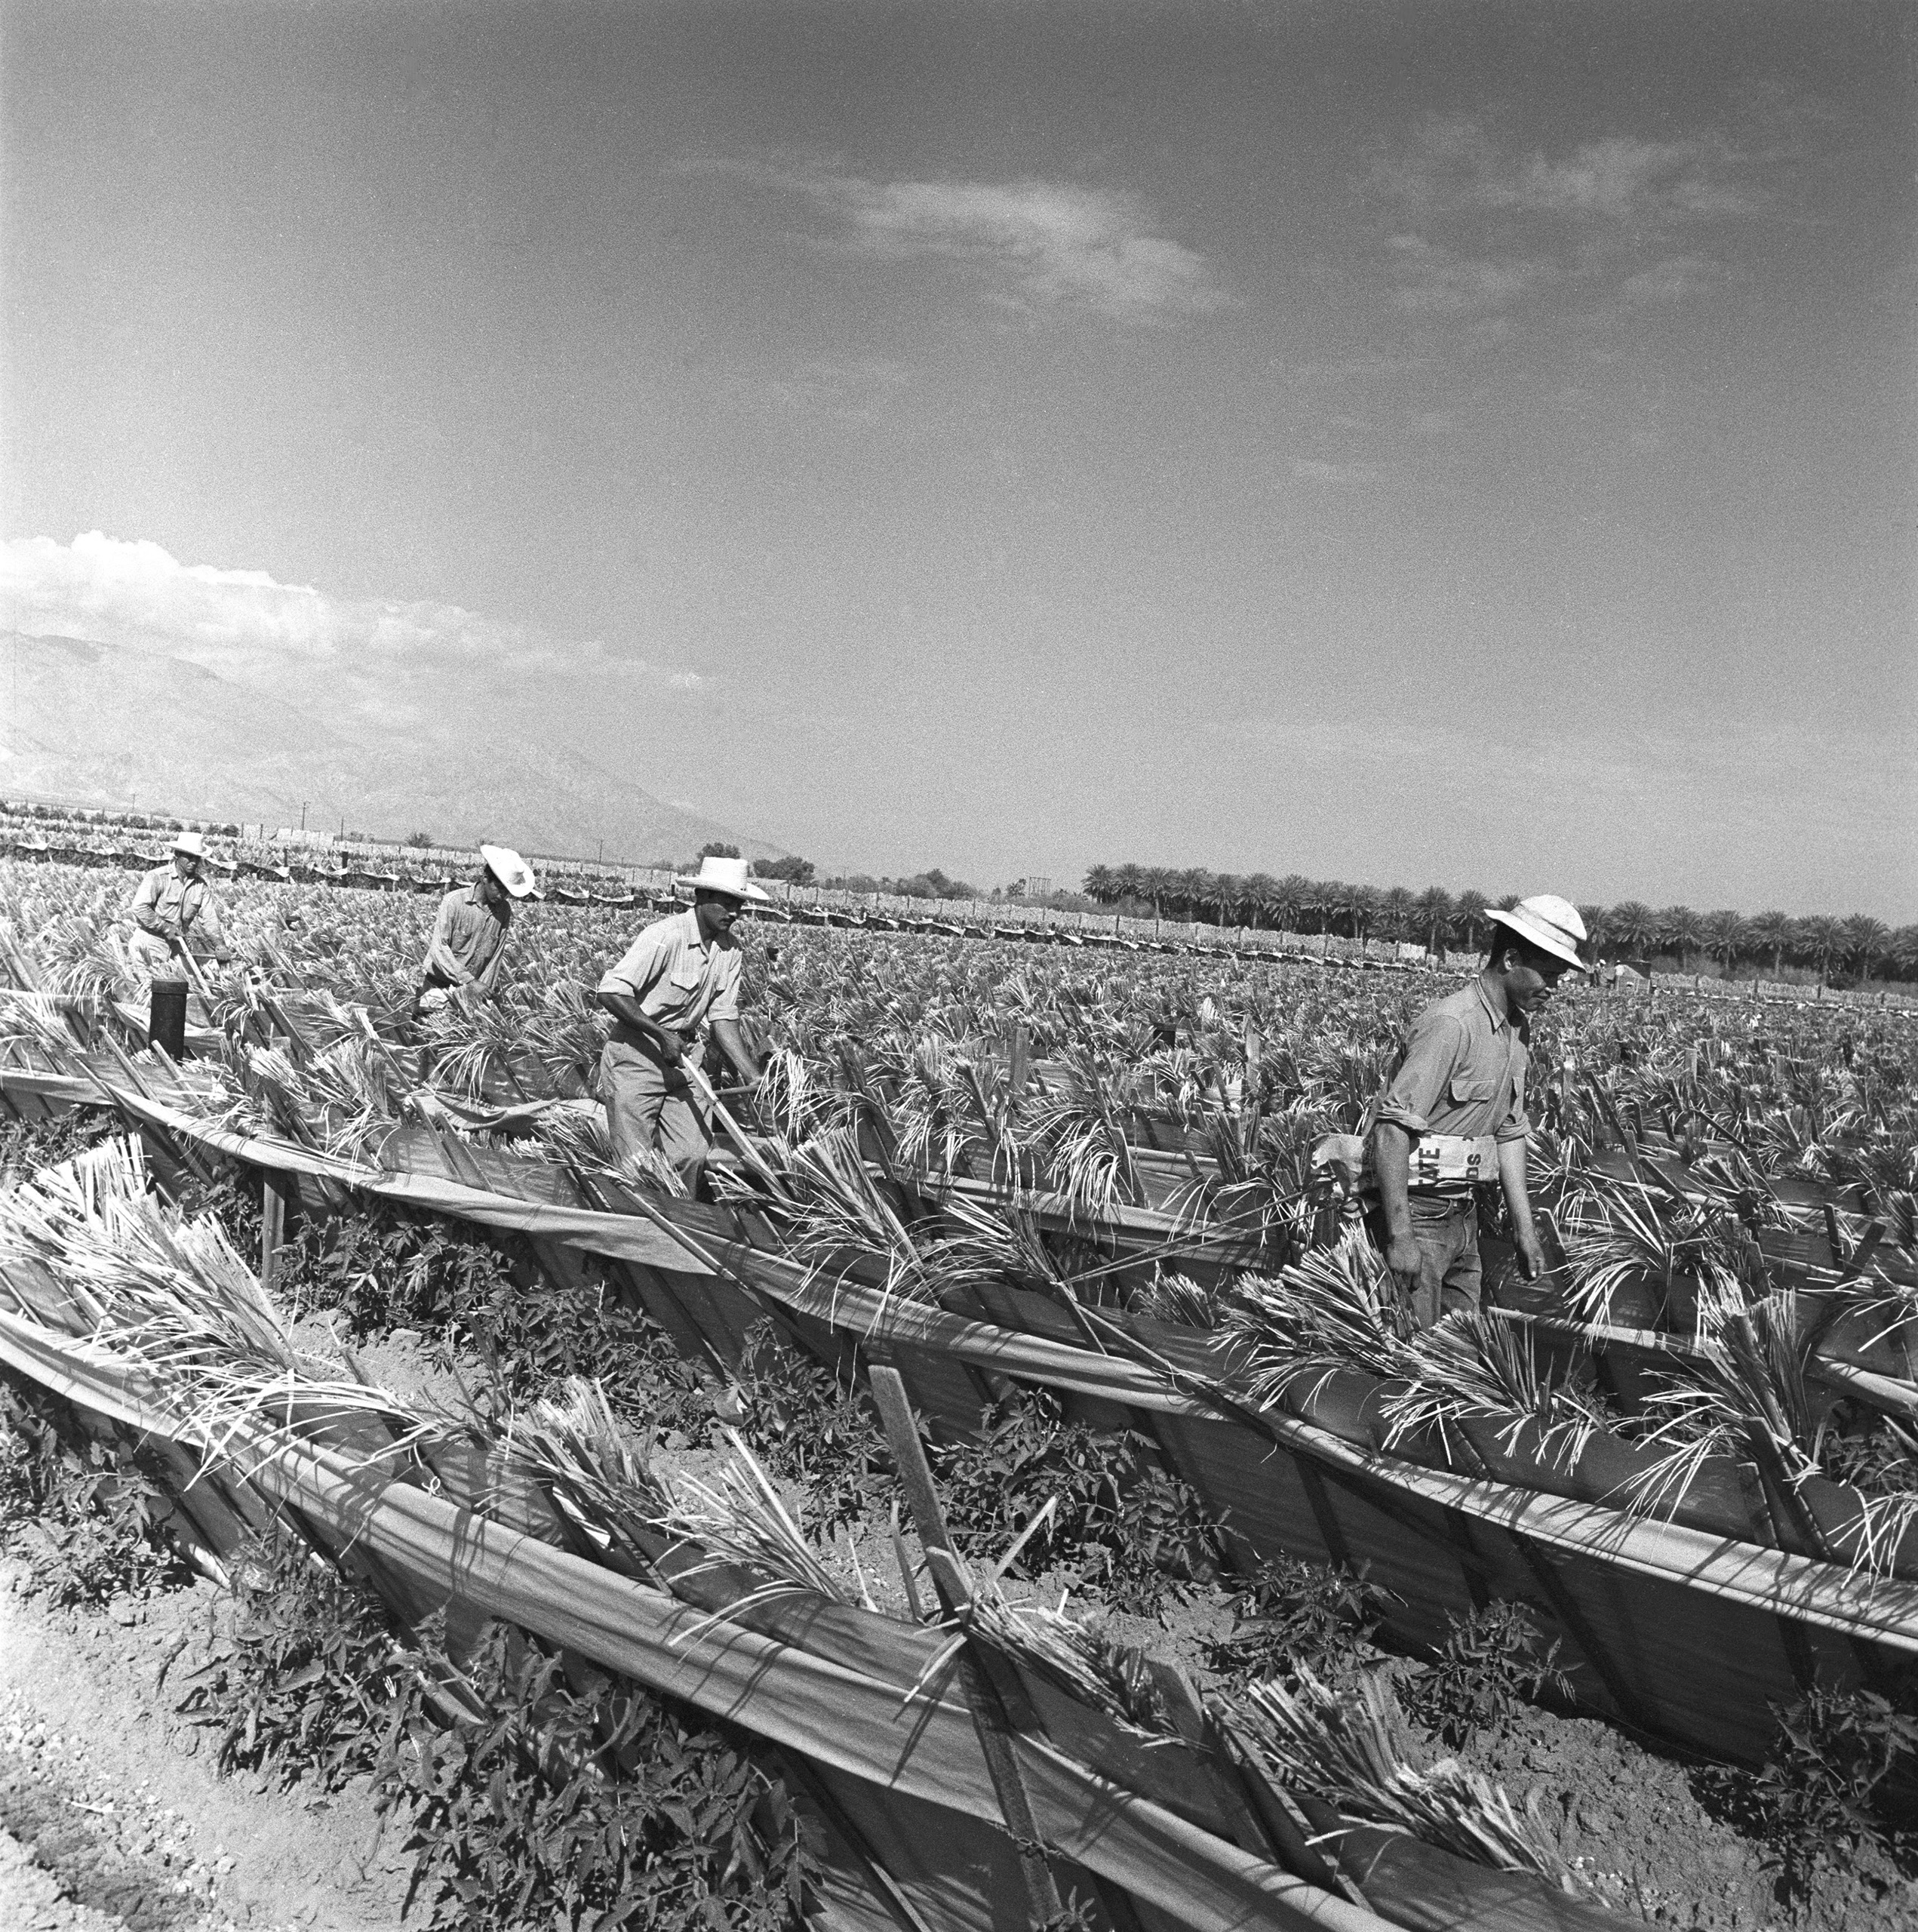 Mexican farm workers, on a farm in California, 1957.